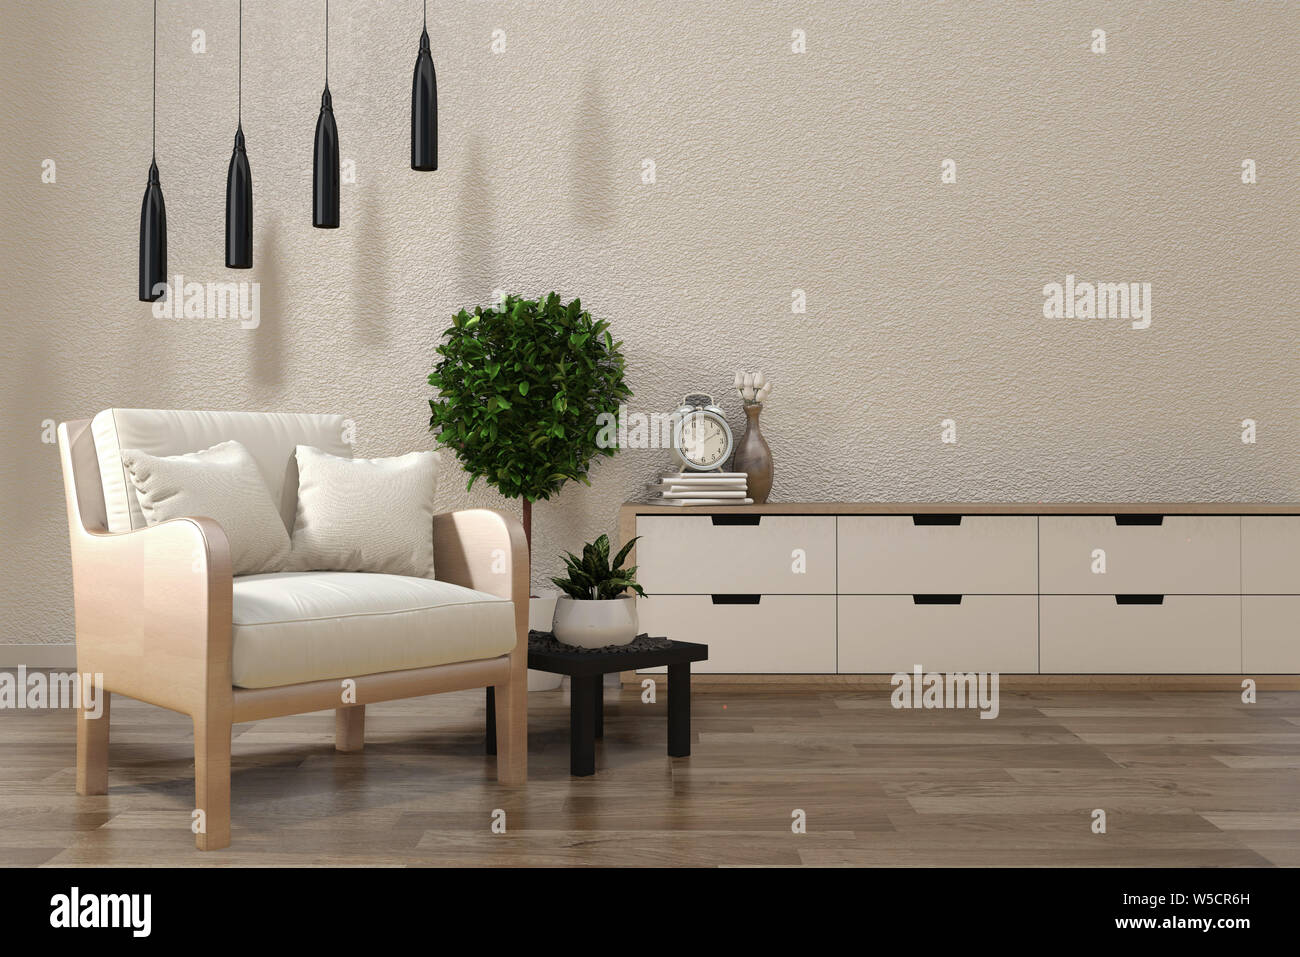 Minimalist Modern Zen Living Room With Wood Floor And Decor Japanese Style 3d Rendering Stock Photo Alamy